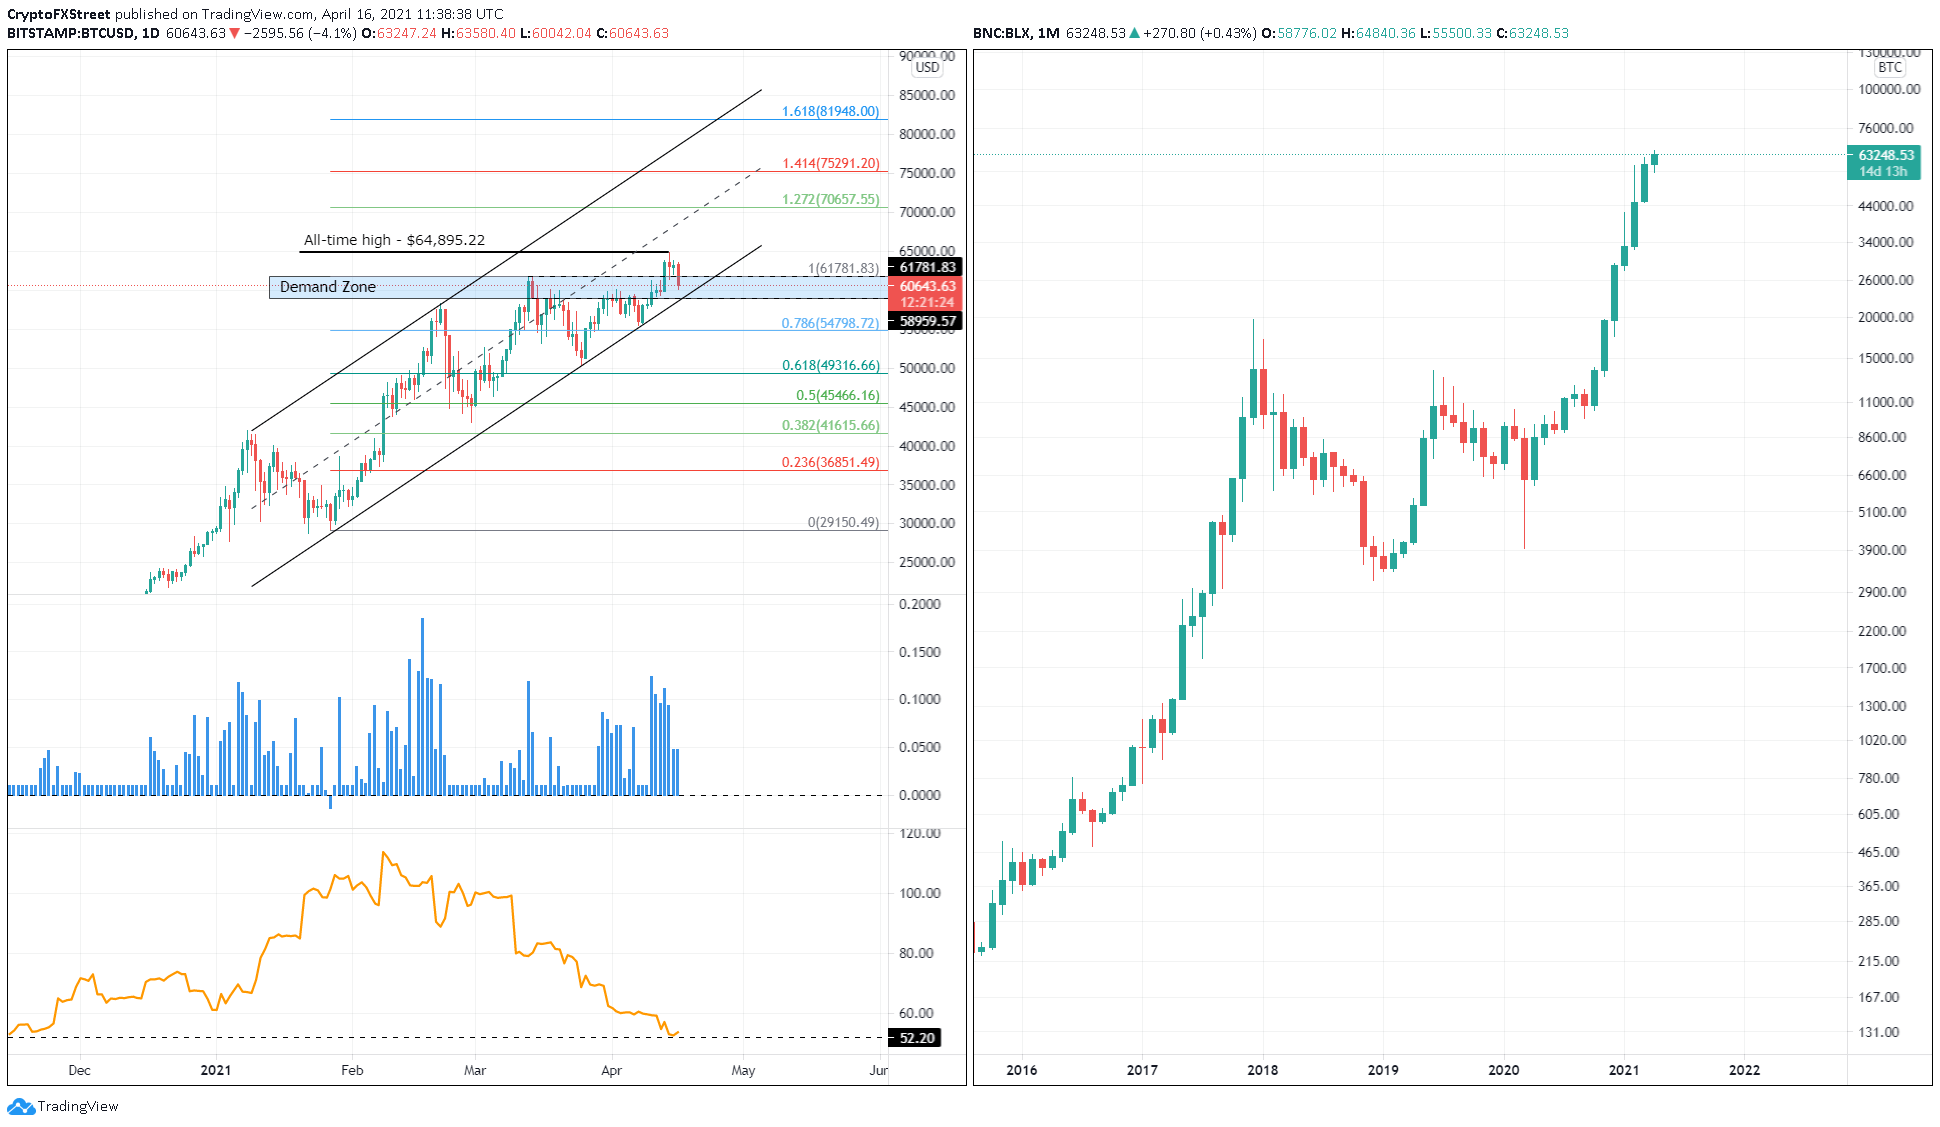 BTC/USD 1-day, 1-month chart